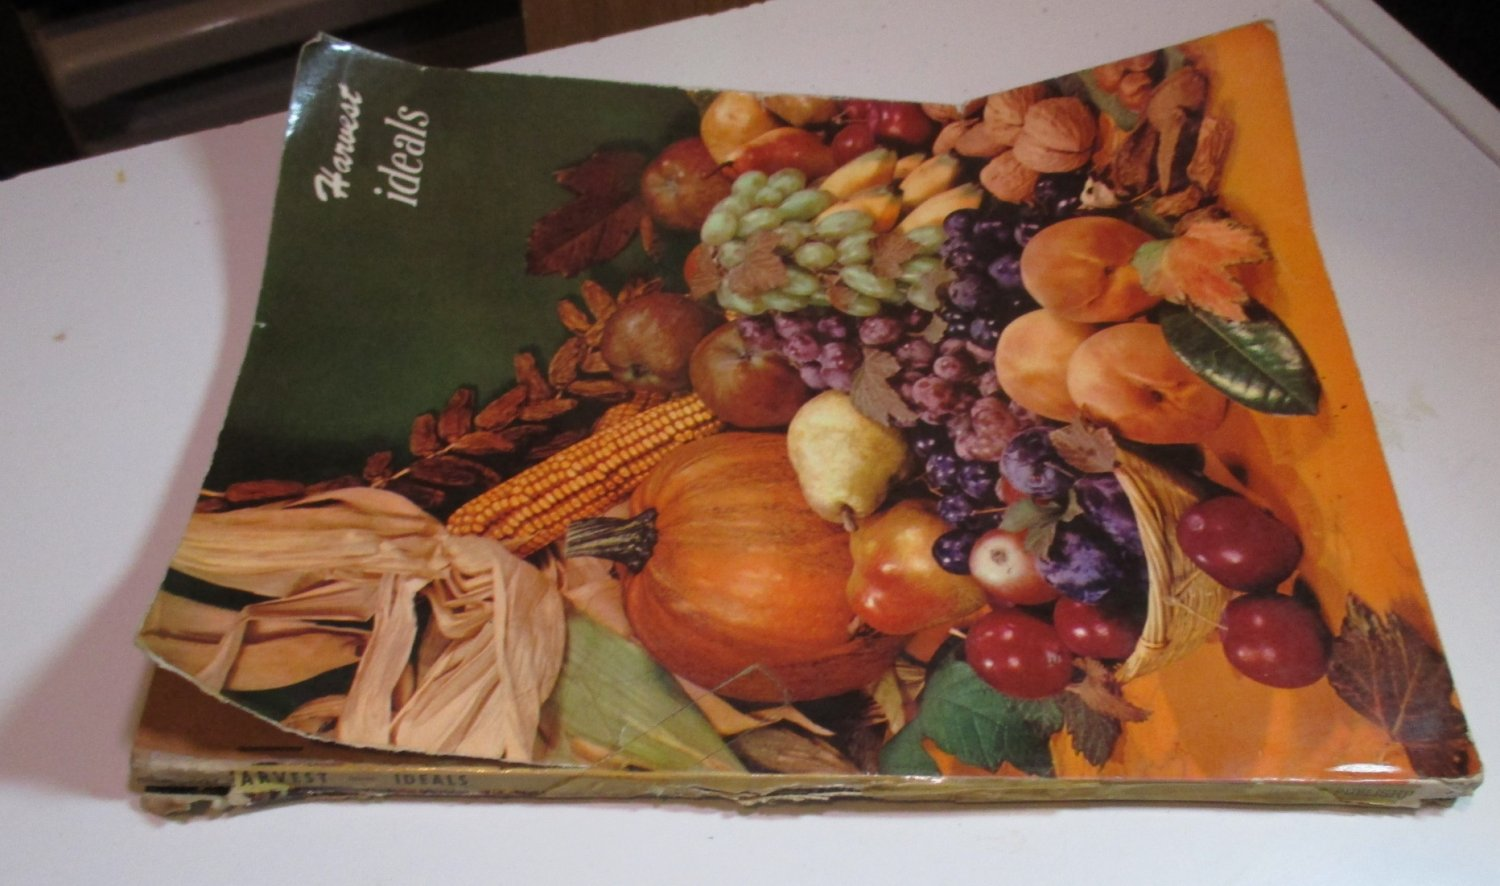 HARVEST ISSUE IDEALS THanksgiving magazine Oct 1951